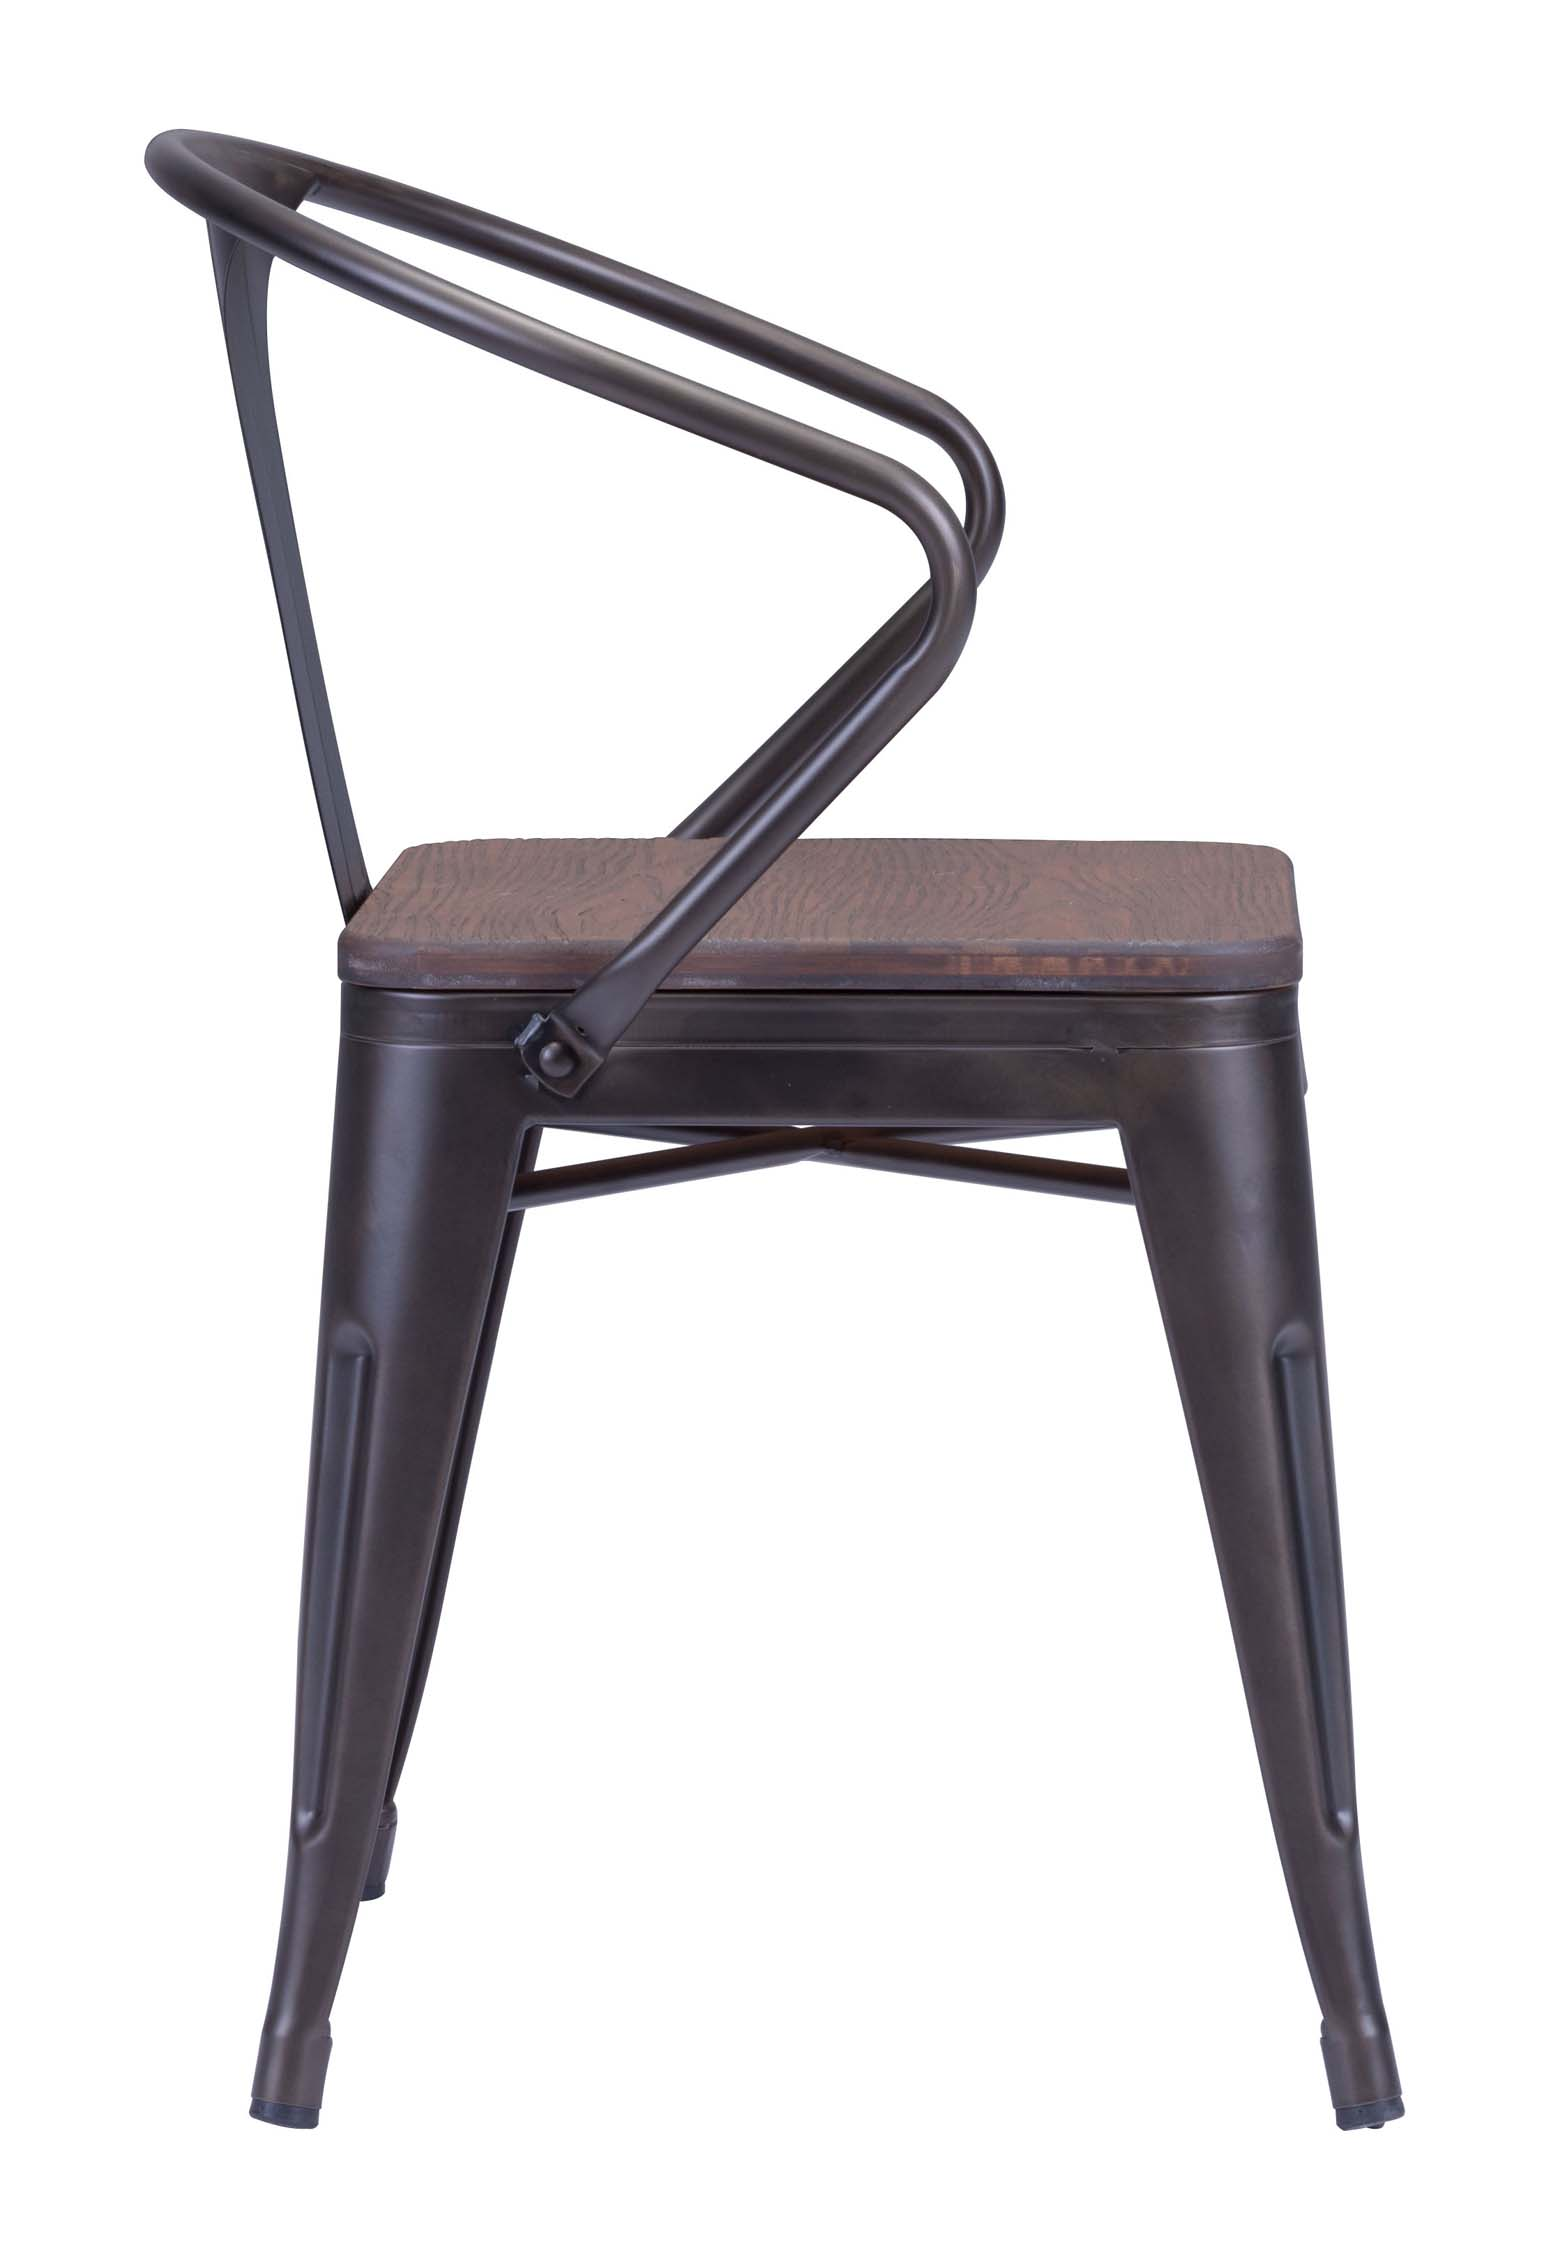 zuo-helix-dining-chair-rustic-wood.jpg